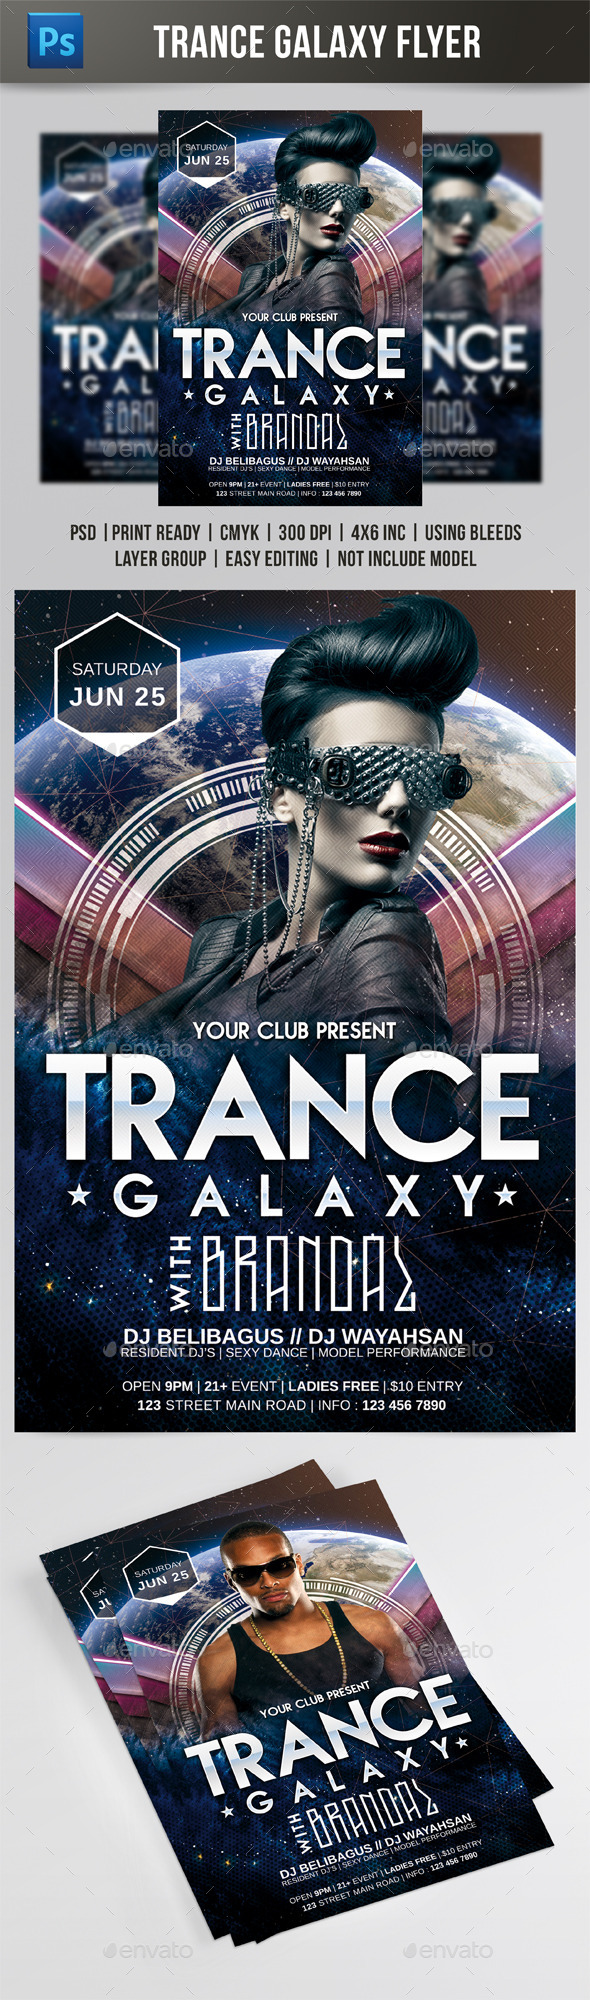 GraphicRiver Trance Galaxy Flyer 10173199